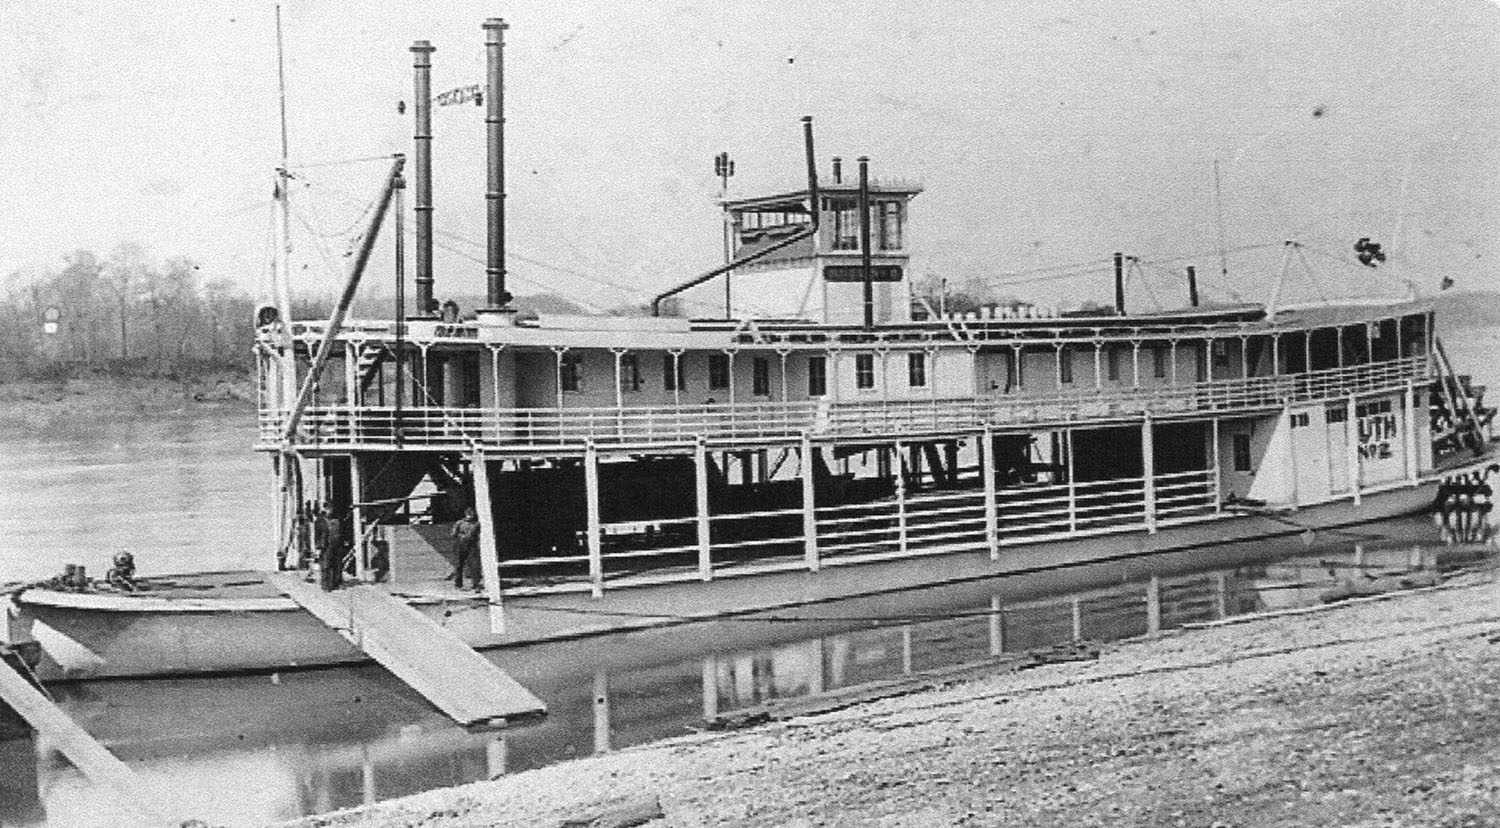 The slim and trim sternwheeler Ruth No. 2 at a landing. (Keith Norrington collection)